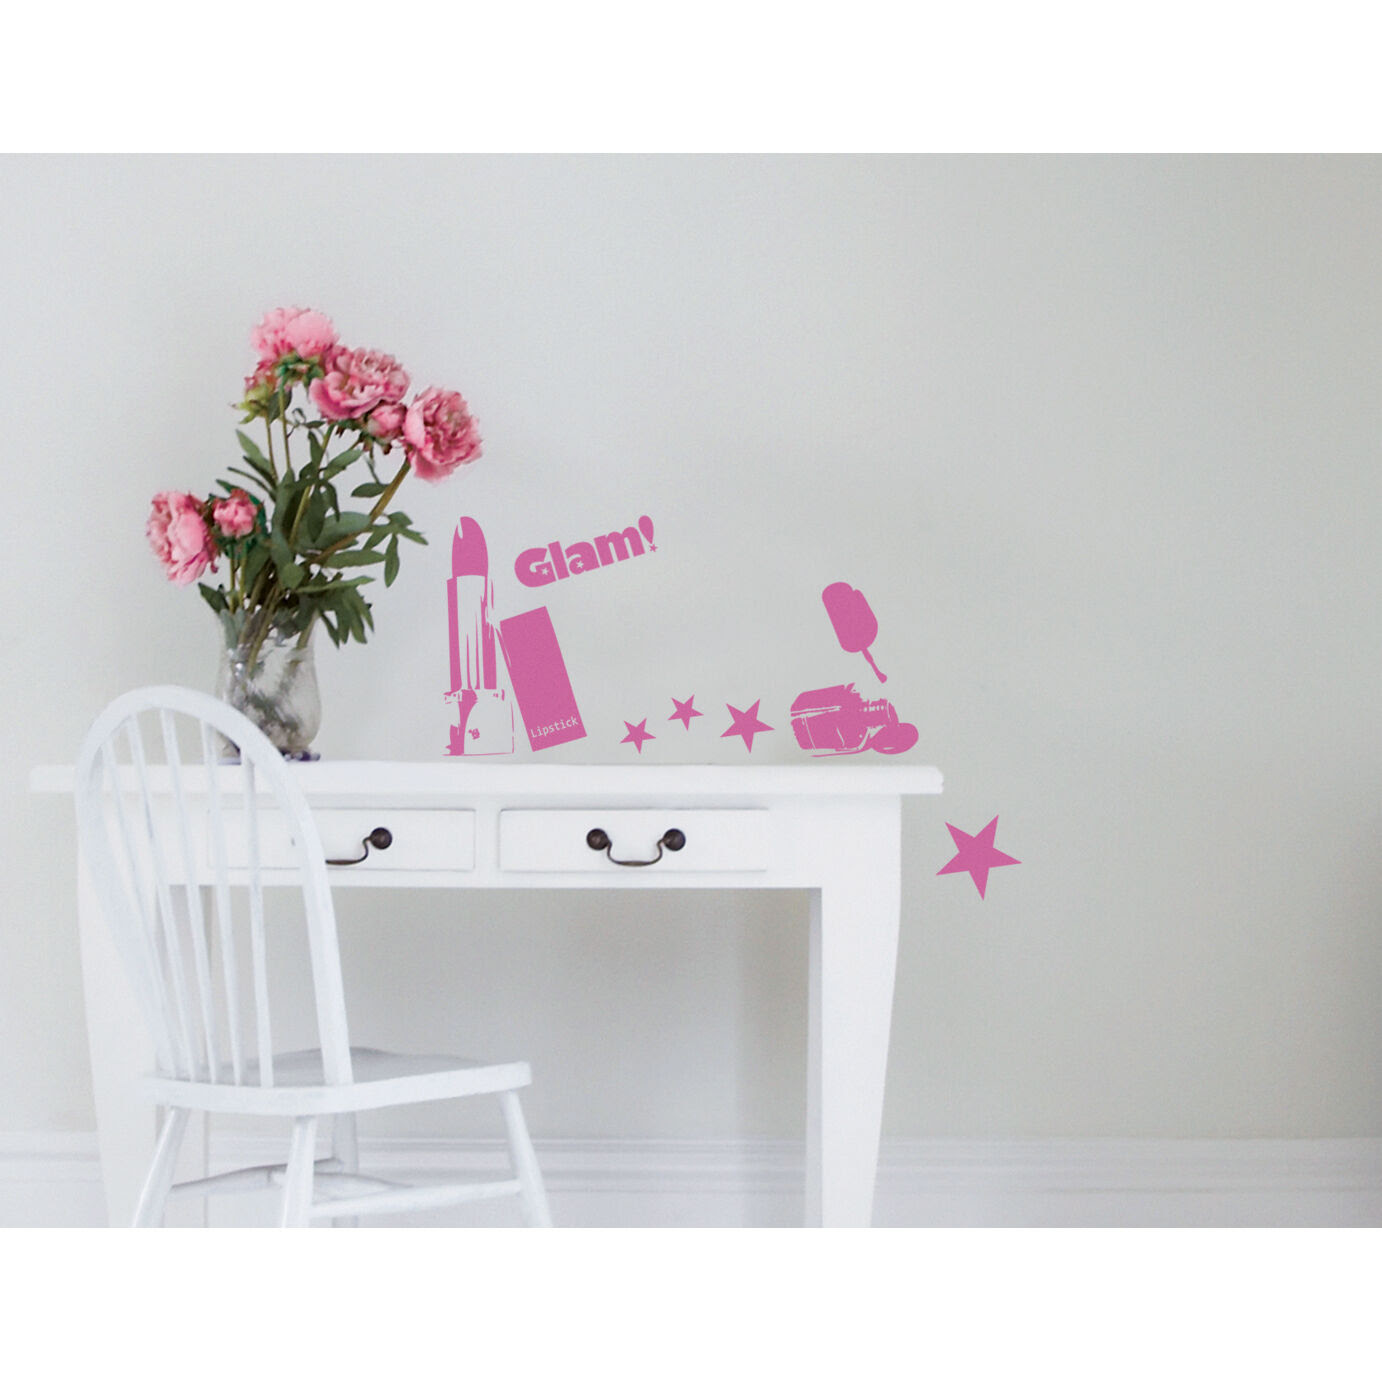 Glam Theme Wall Decal Stickers Bedroom Girl Teen Teenager Child ...